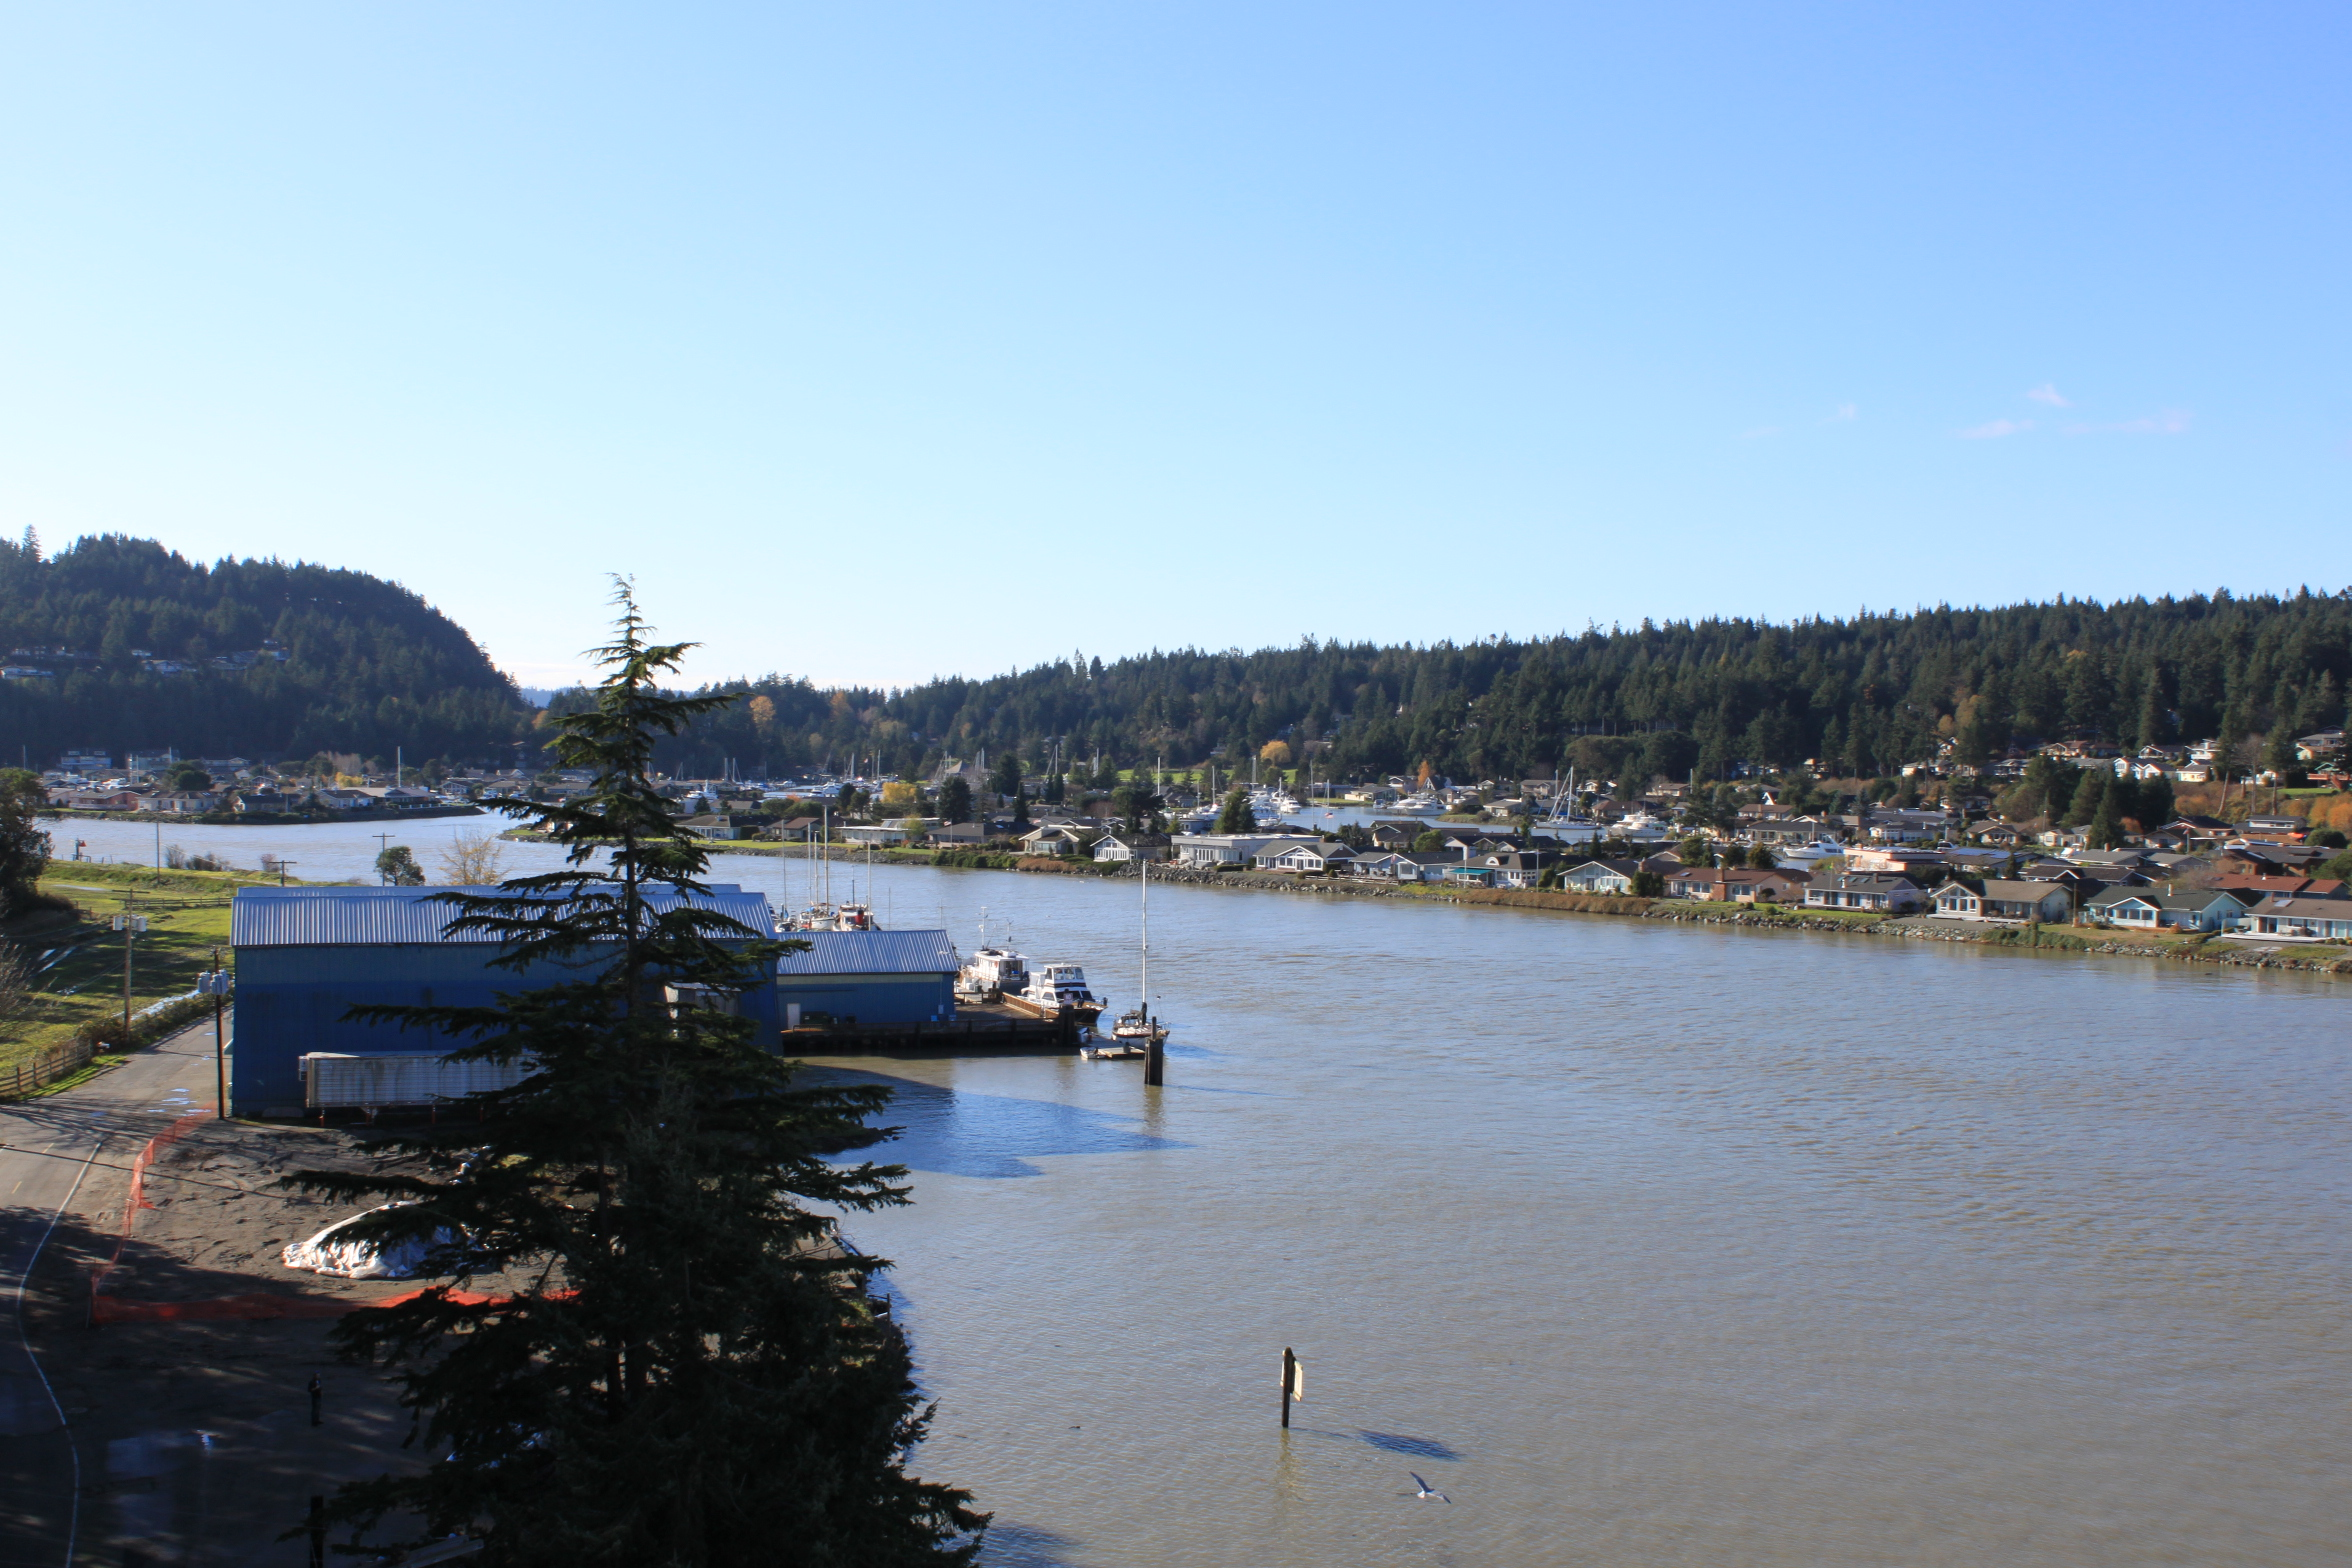 View from the Swinomish Channel Bridge Overlooking Part of the Reservation. (Credit: Ali Johnson)